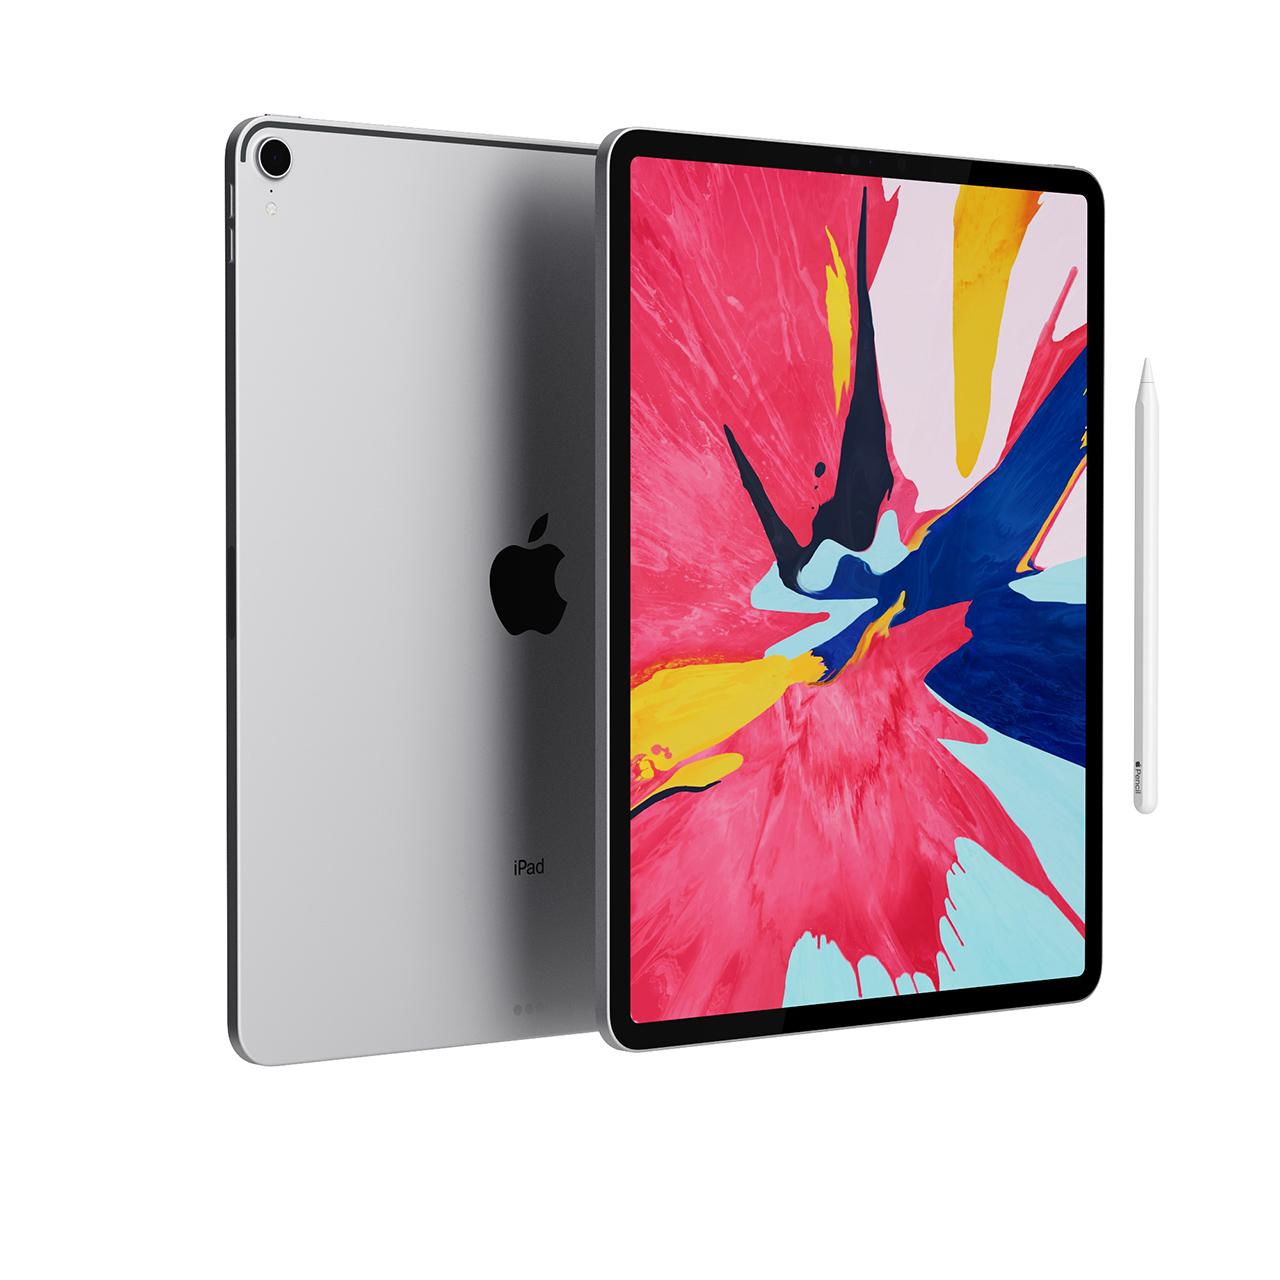 iPad Pro 2018 by Apple